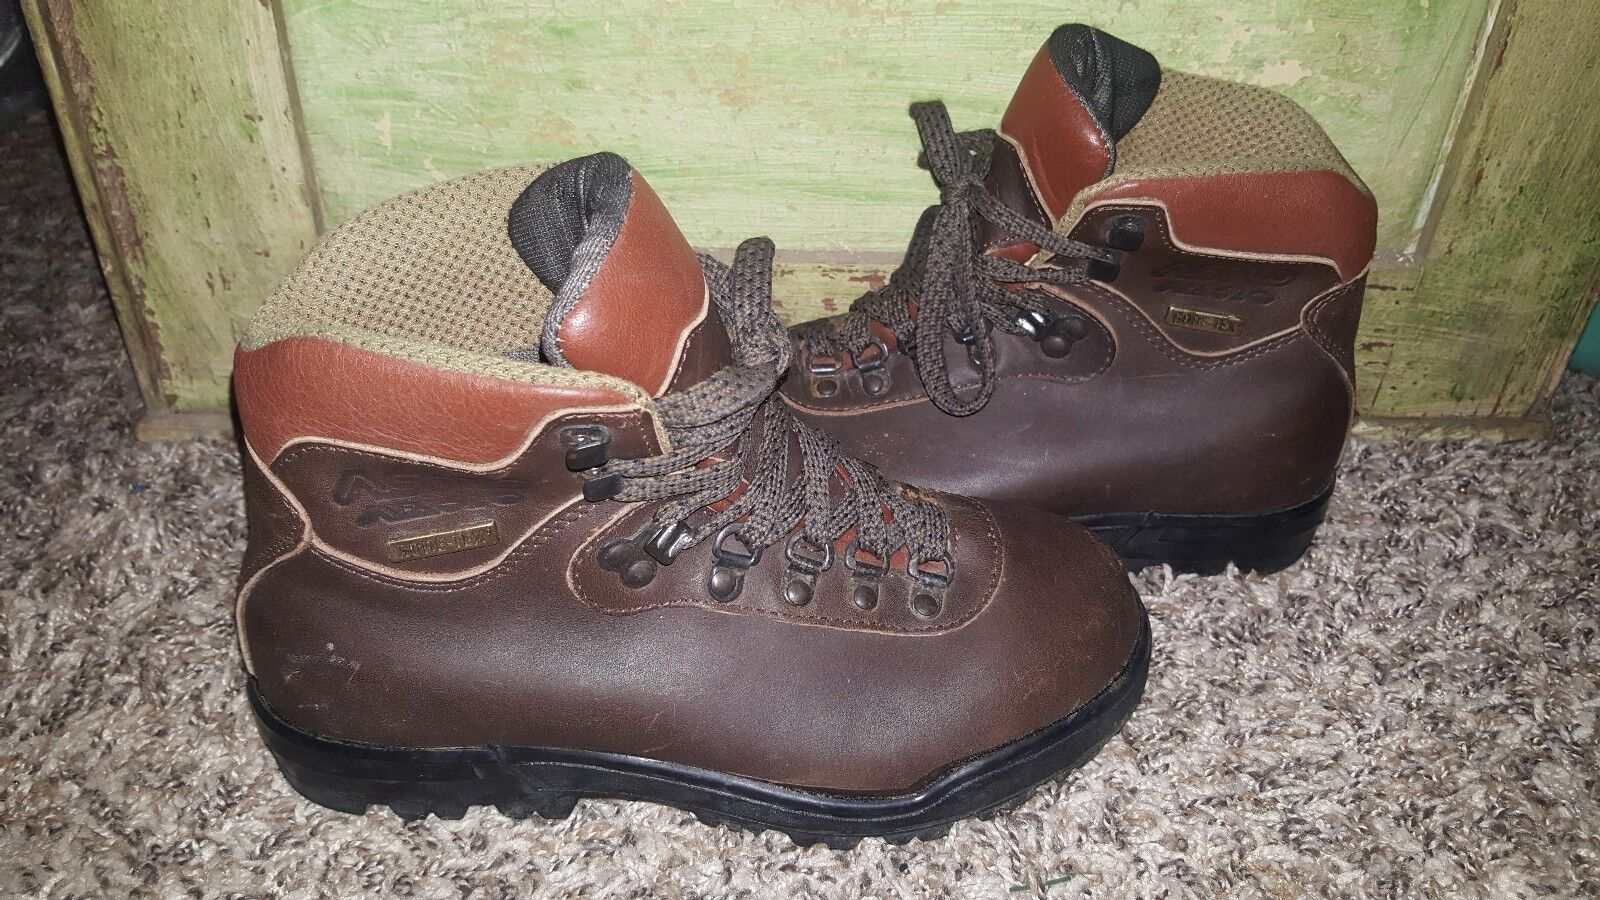 ASOLO AFX 520 womens hiking boots, size 6.5, excellent condition